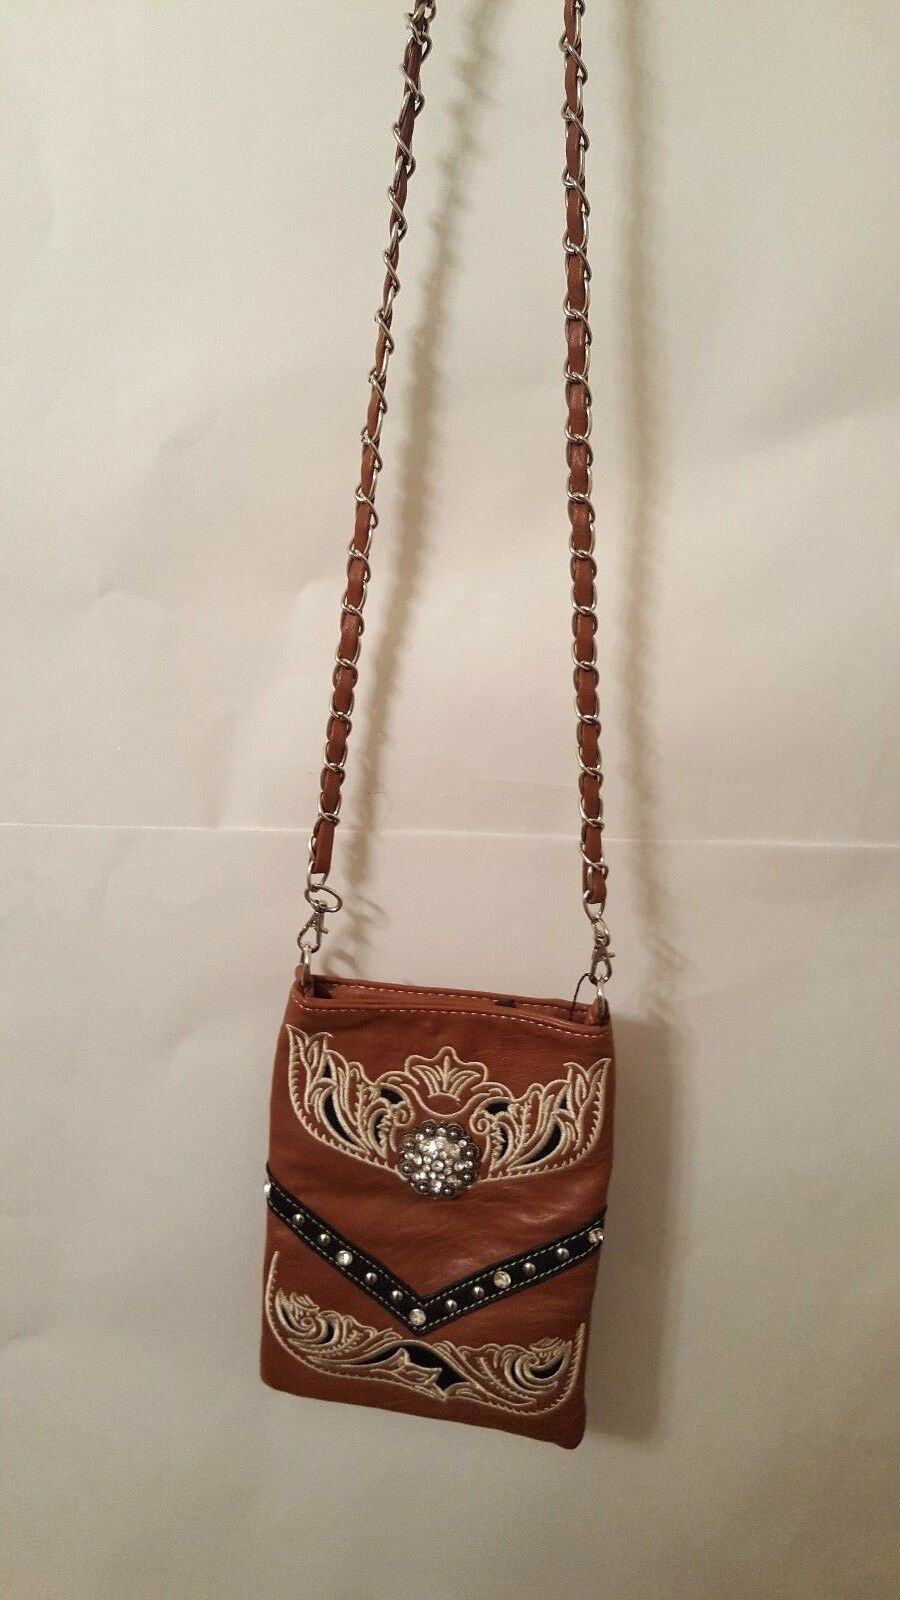 Womens Dark Brown Cross Body Purse with Embrodery And A Crystal Concho